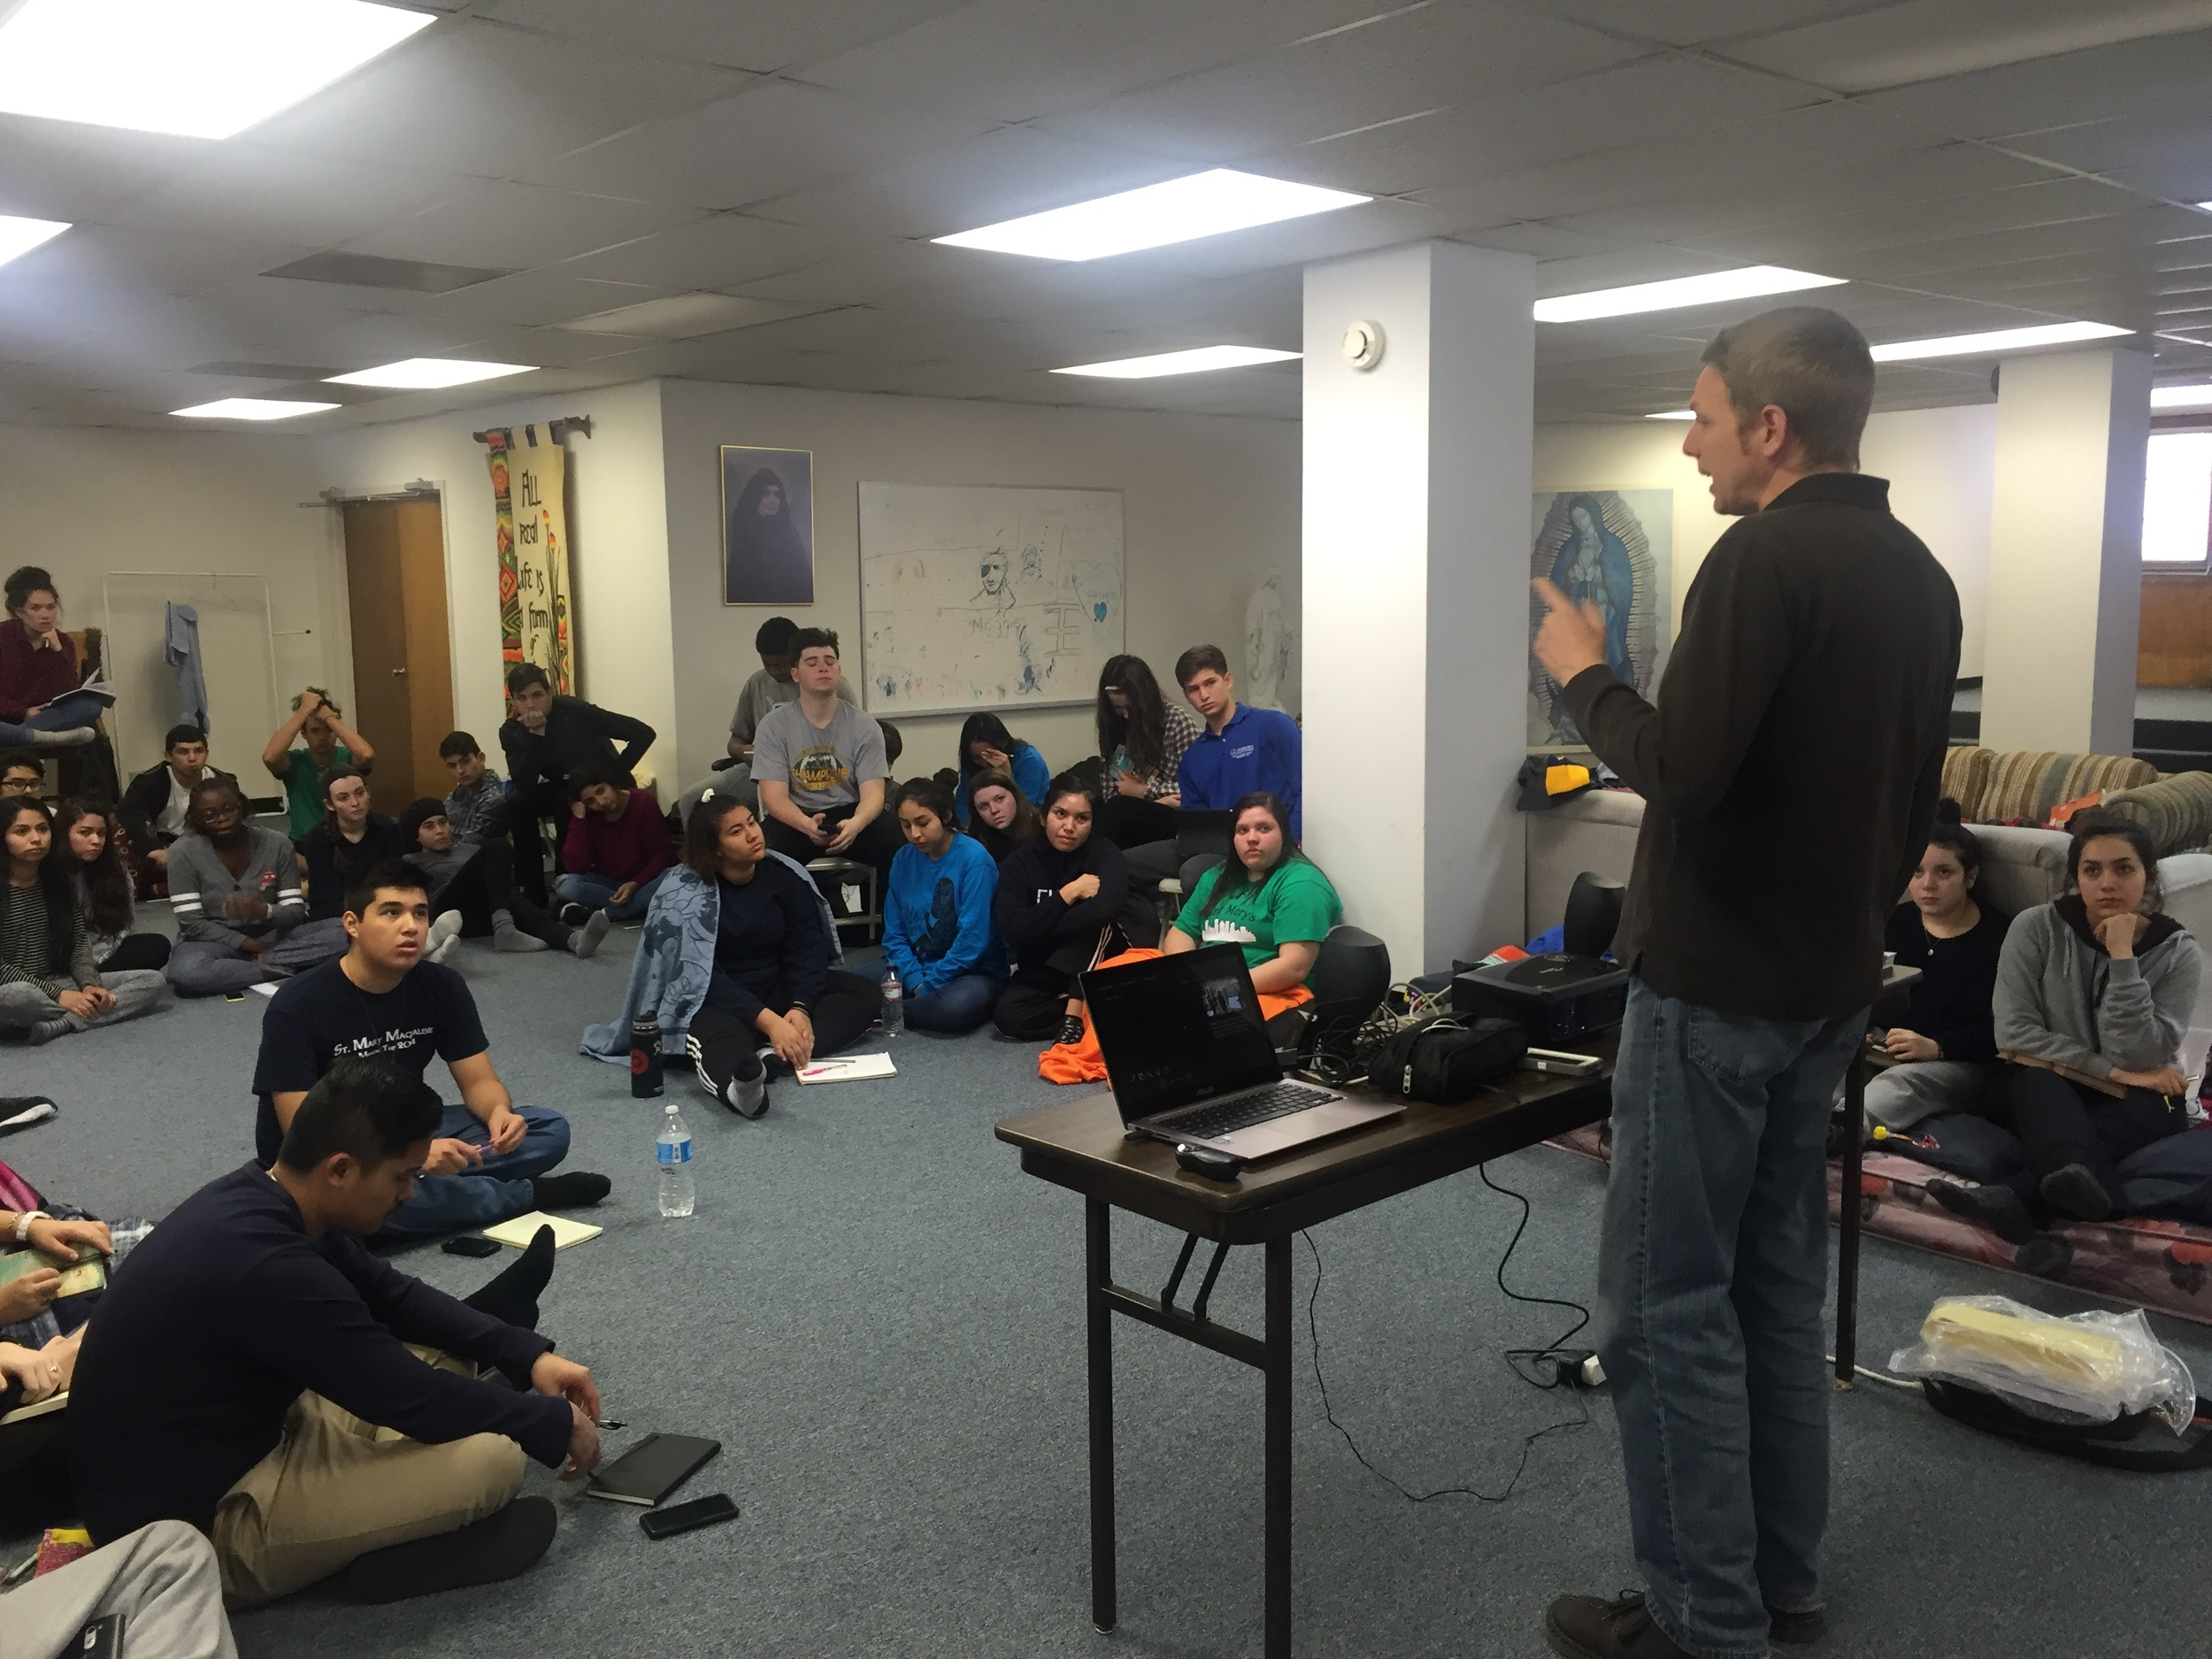 Students from Phoenix and I work on pro-life dialogue skills in a makeshift basement seminar environment. They were troopers!